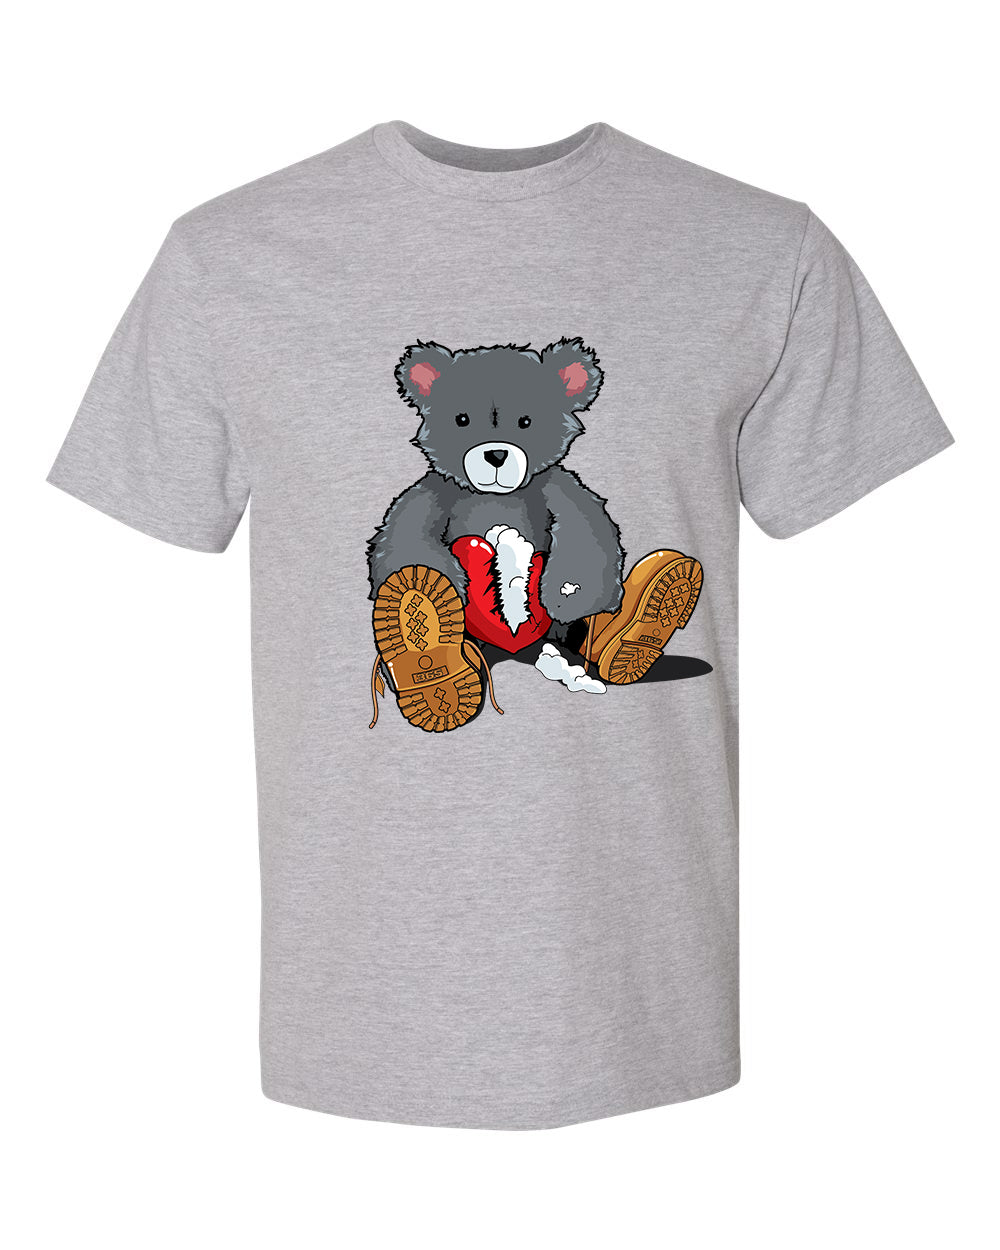 365 Clothing Broken Heart Bear T-Shirt -Grey